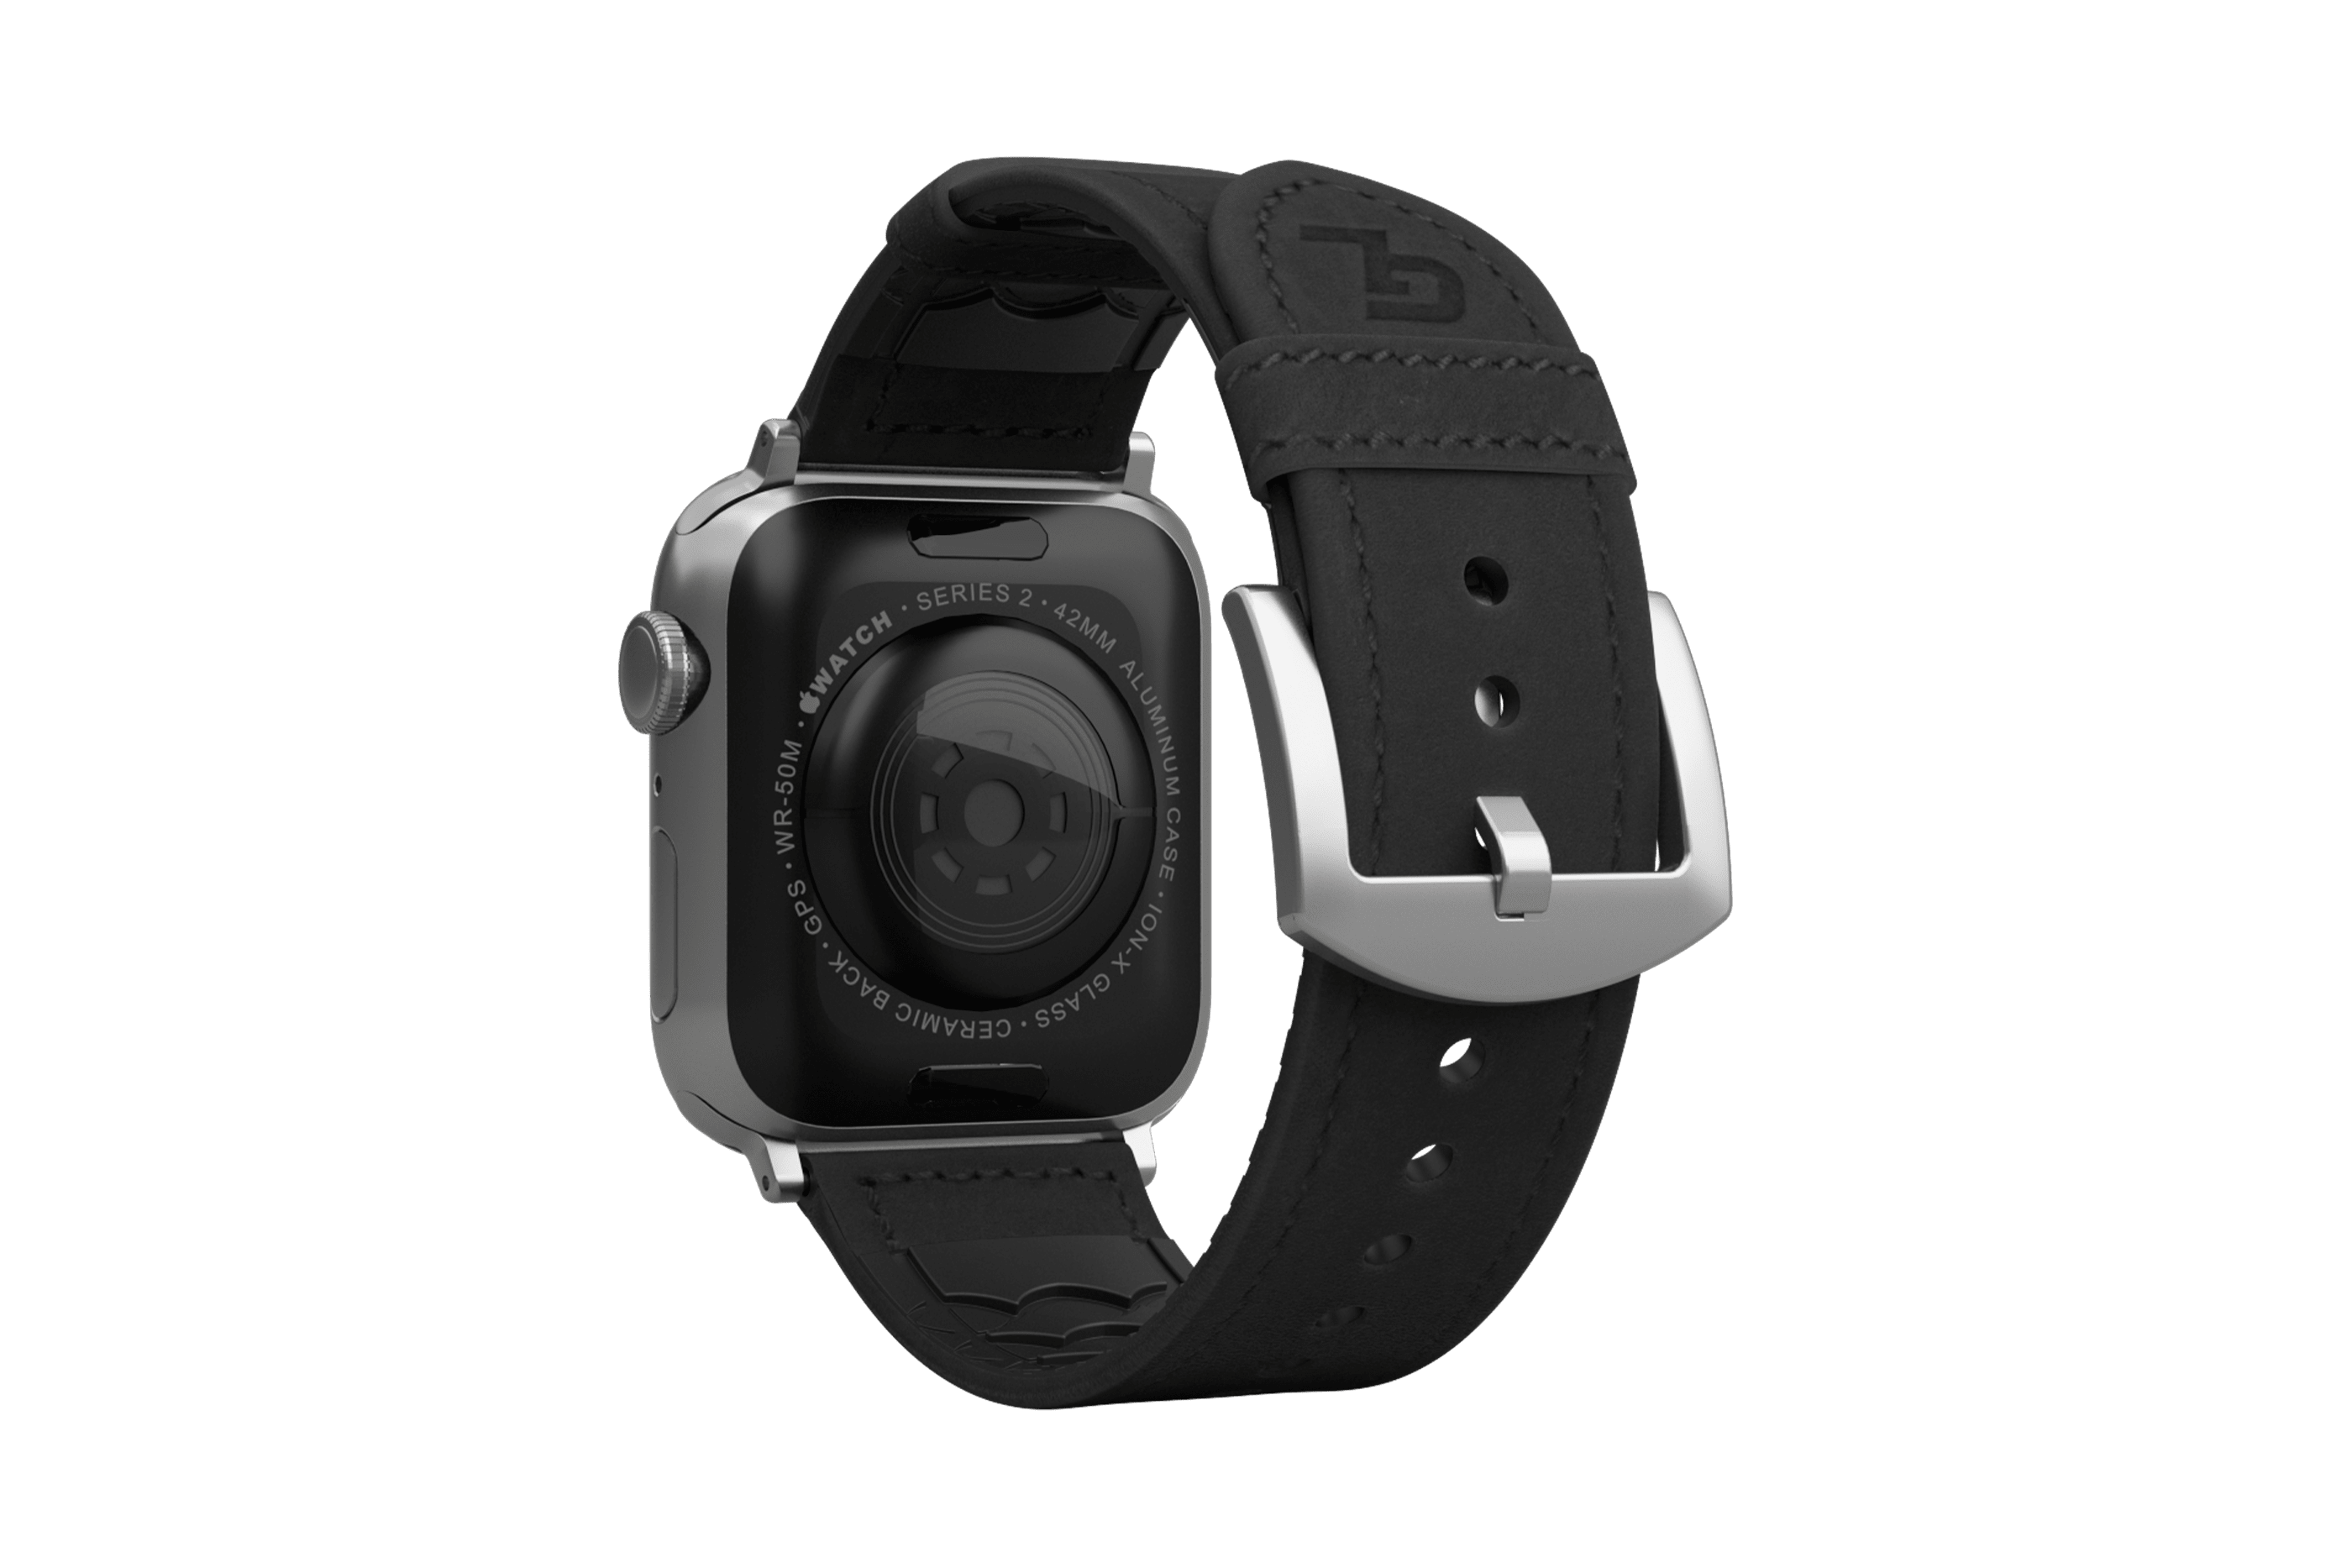 Vulcan Obsidian Black Leather apple watch band with silver hardware viewed from top down